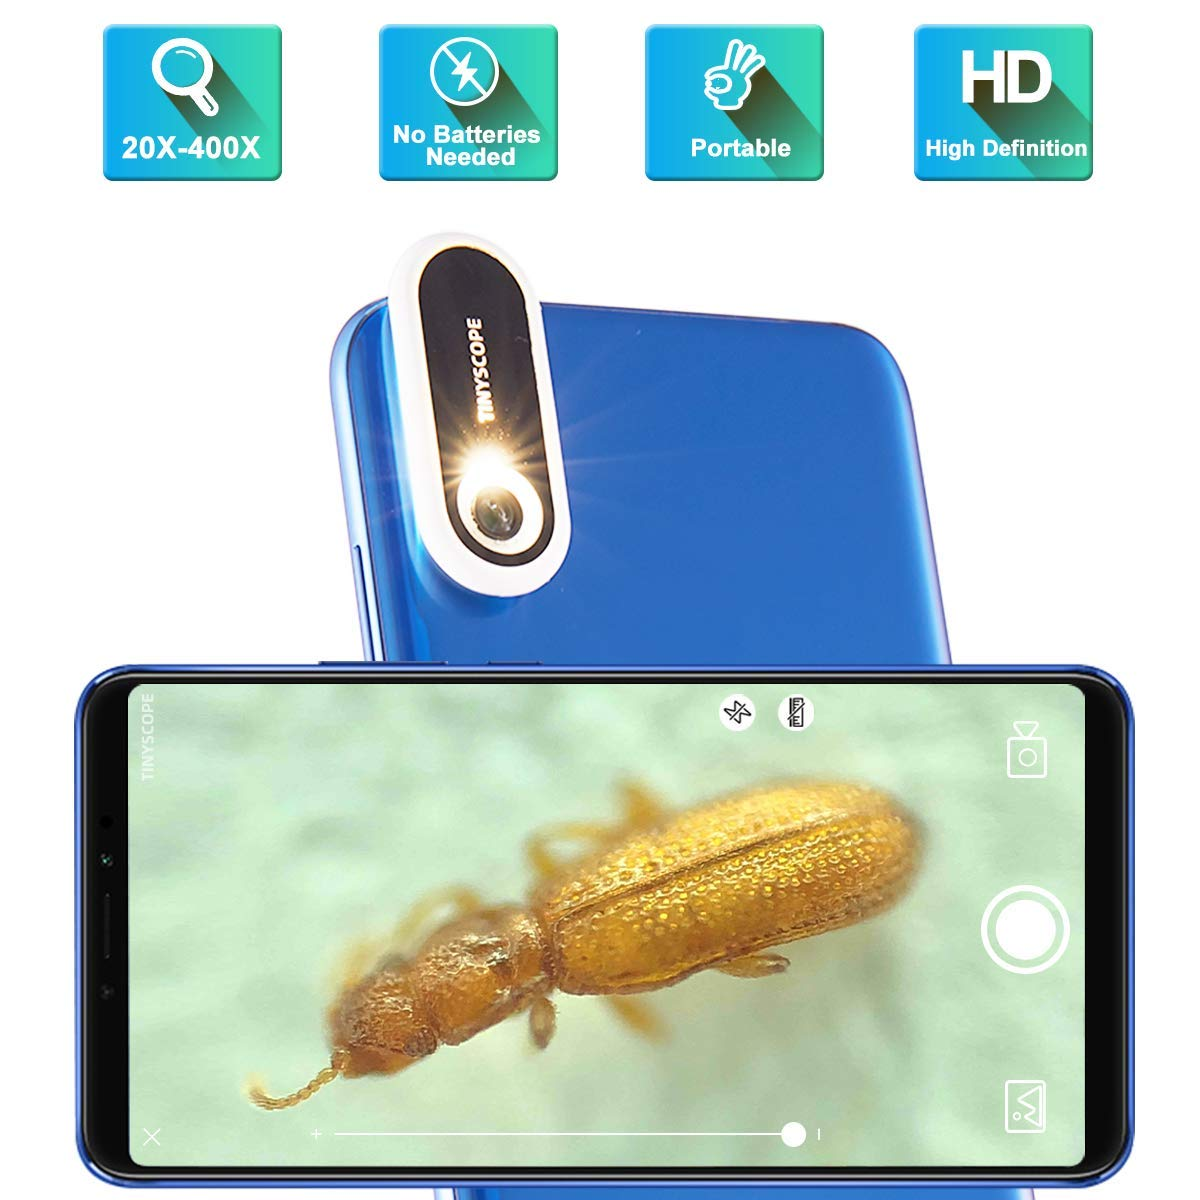 TINYSCOPE Mobile Microscope, 20 to 400x Magnification, Turn Your Cell Phone into a Portable Microscope in Seconds, with No Need for Batteries, Power Cords, or USB Cables. by TINYSCOPE